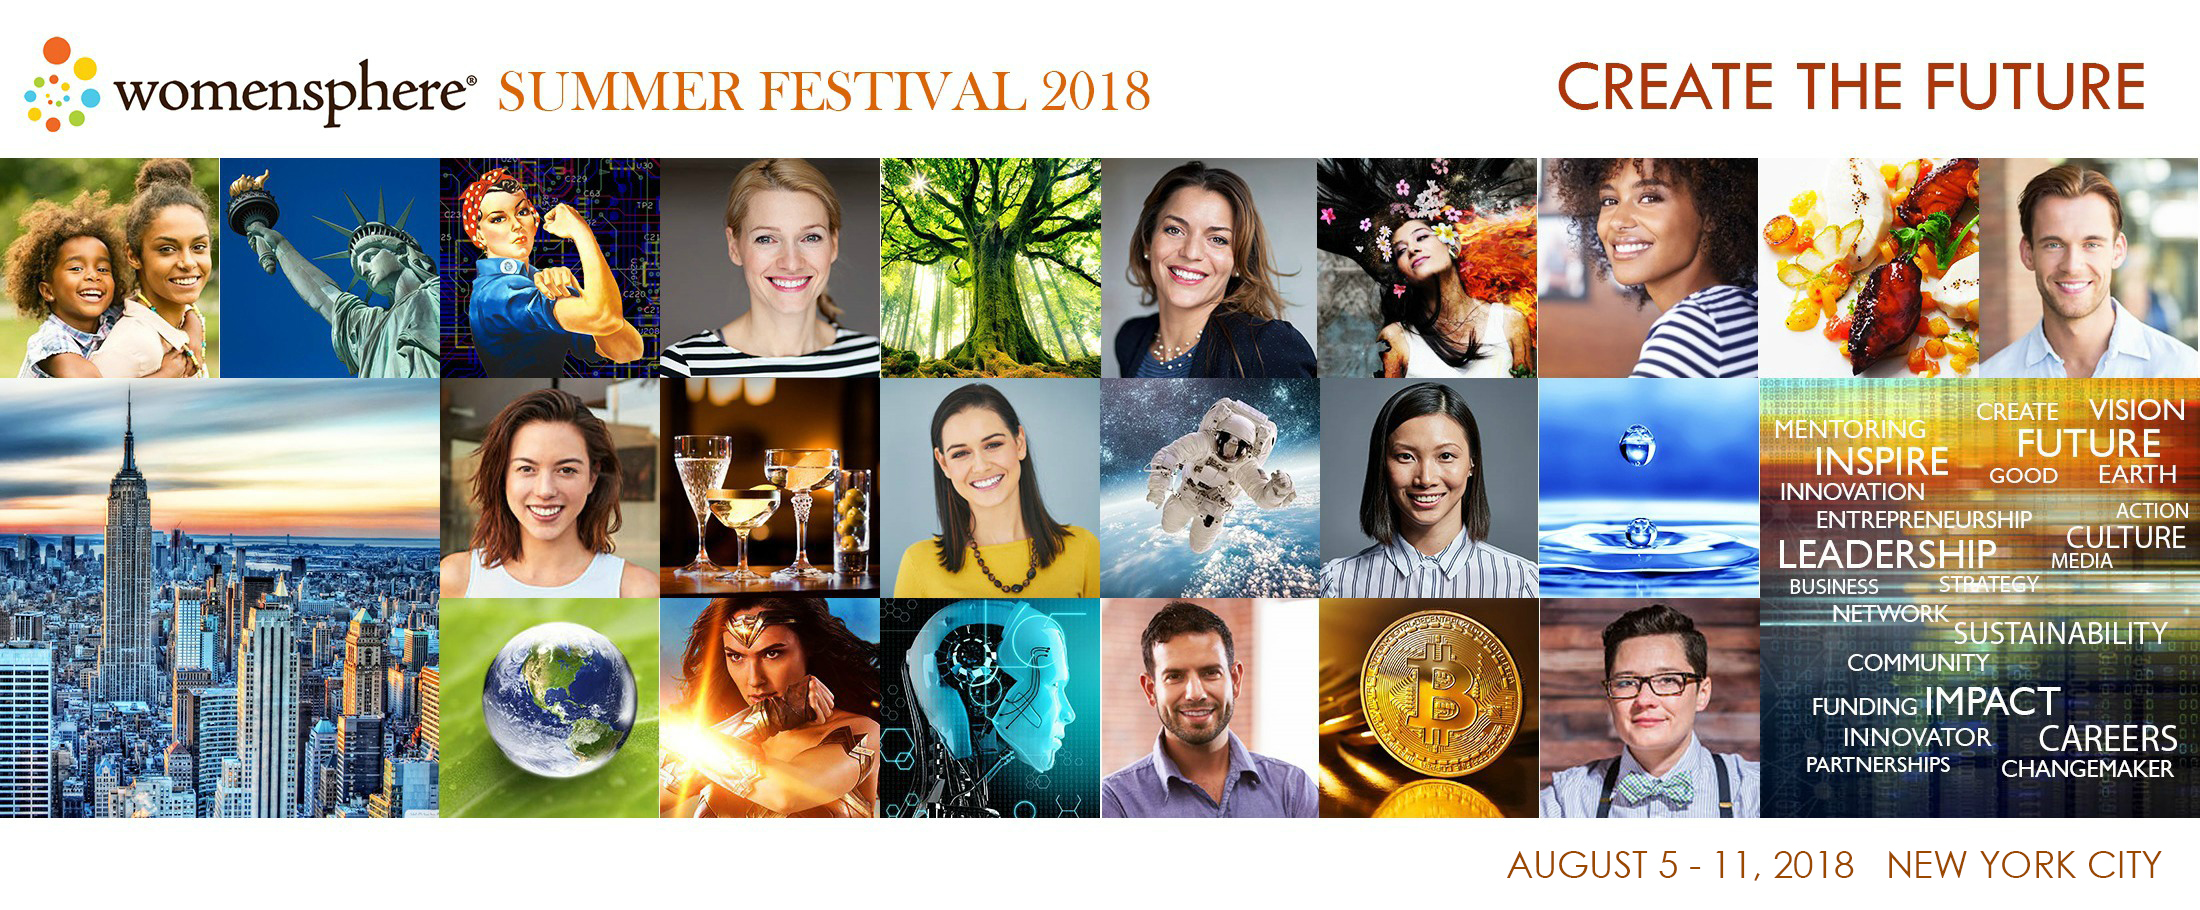 Womensphere Summer Festival AUG 2018.jpg